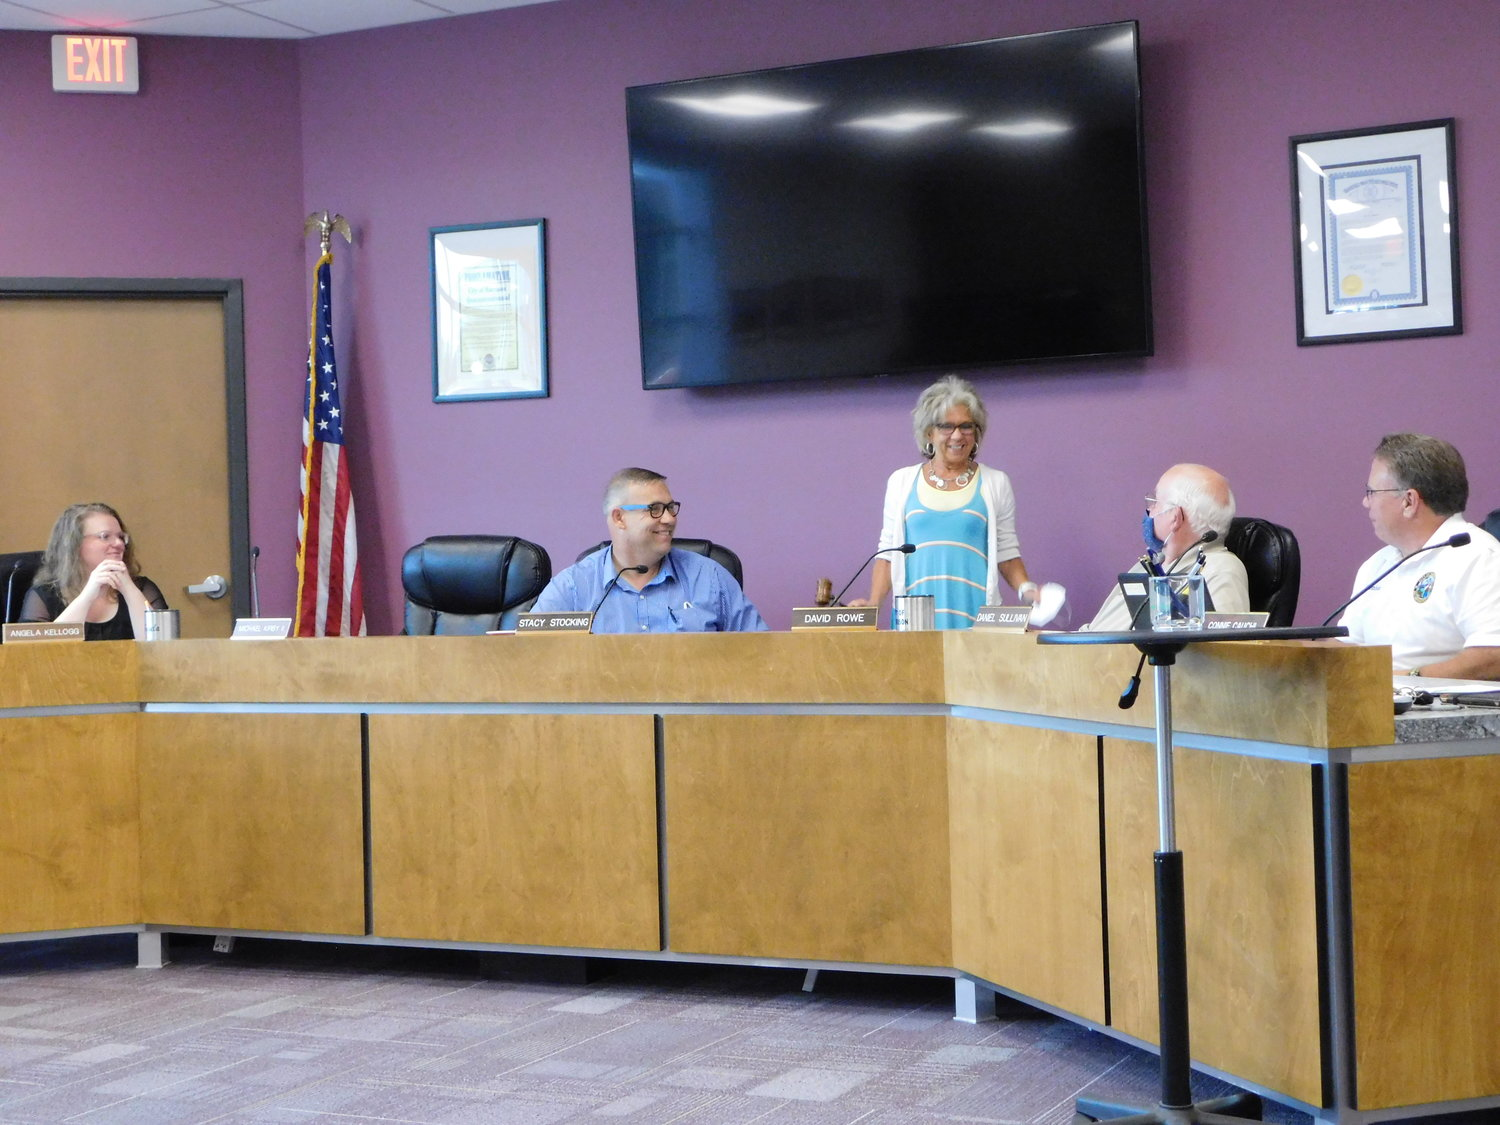 Council members look on as Sharon Hawkins, city treasurer, gavels the close of her last Harrison City Council meeting. The following Wednesday was to be Hawkins' last day on the job before retiring, leaving the city's employ after 41 years.